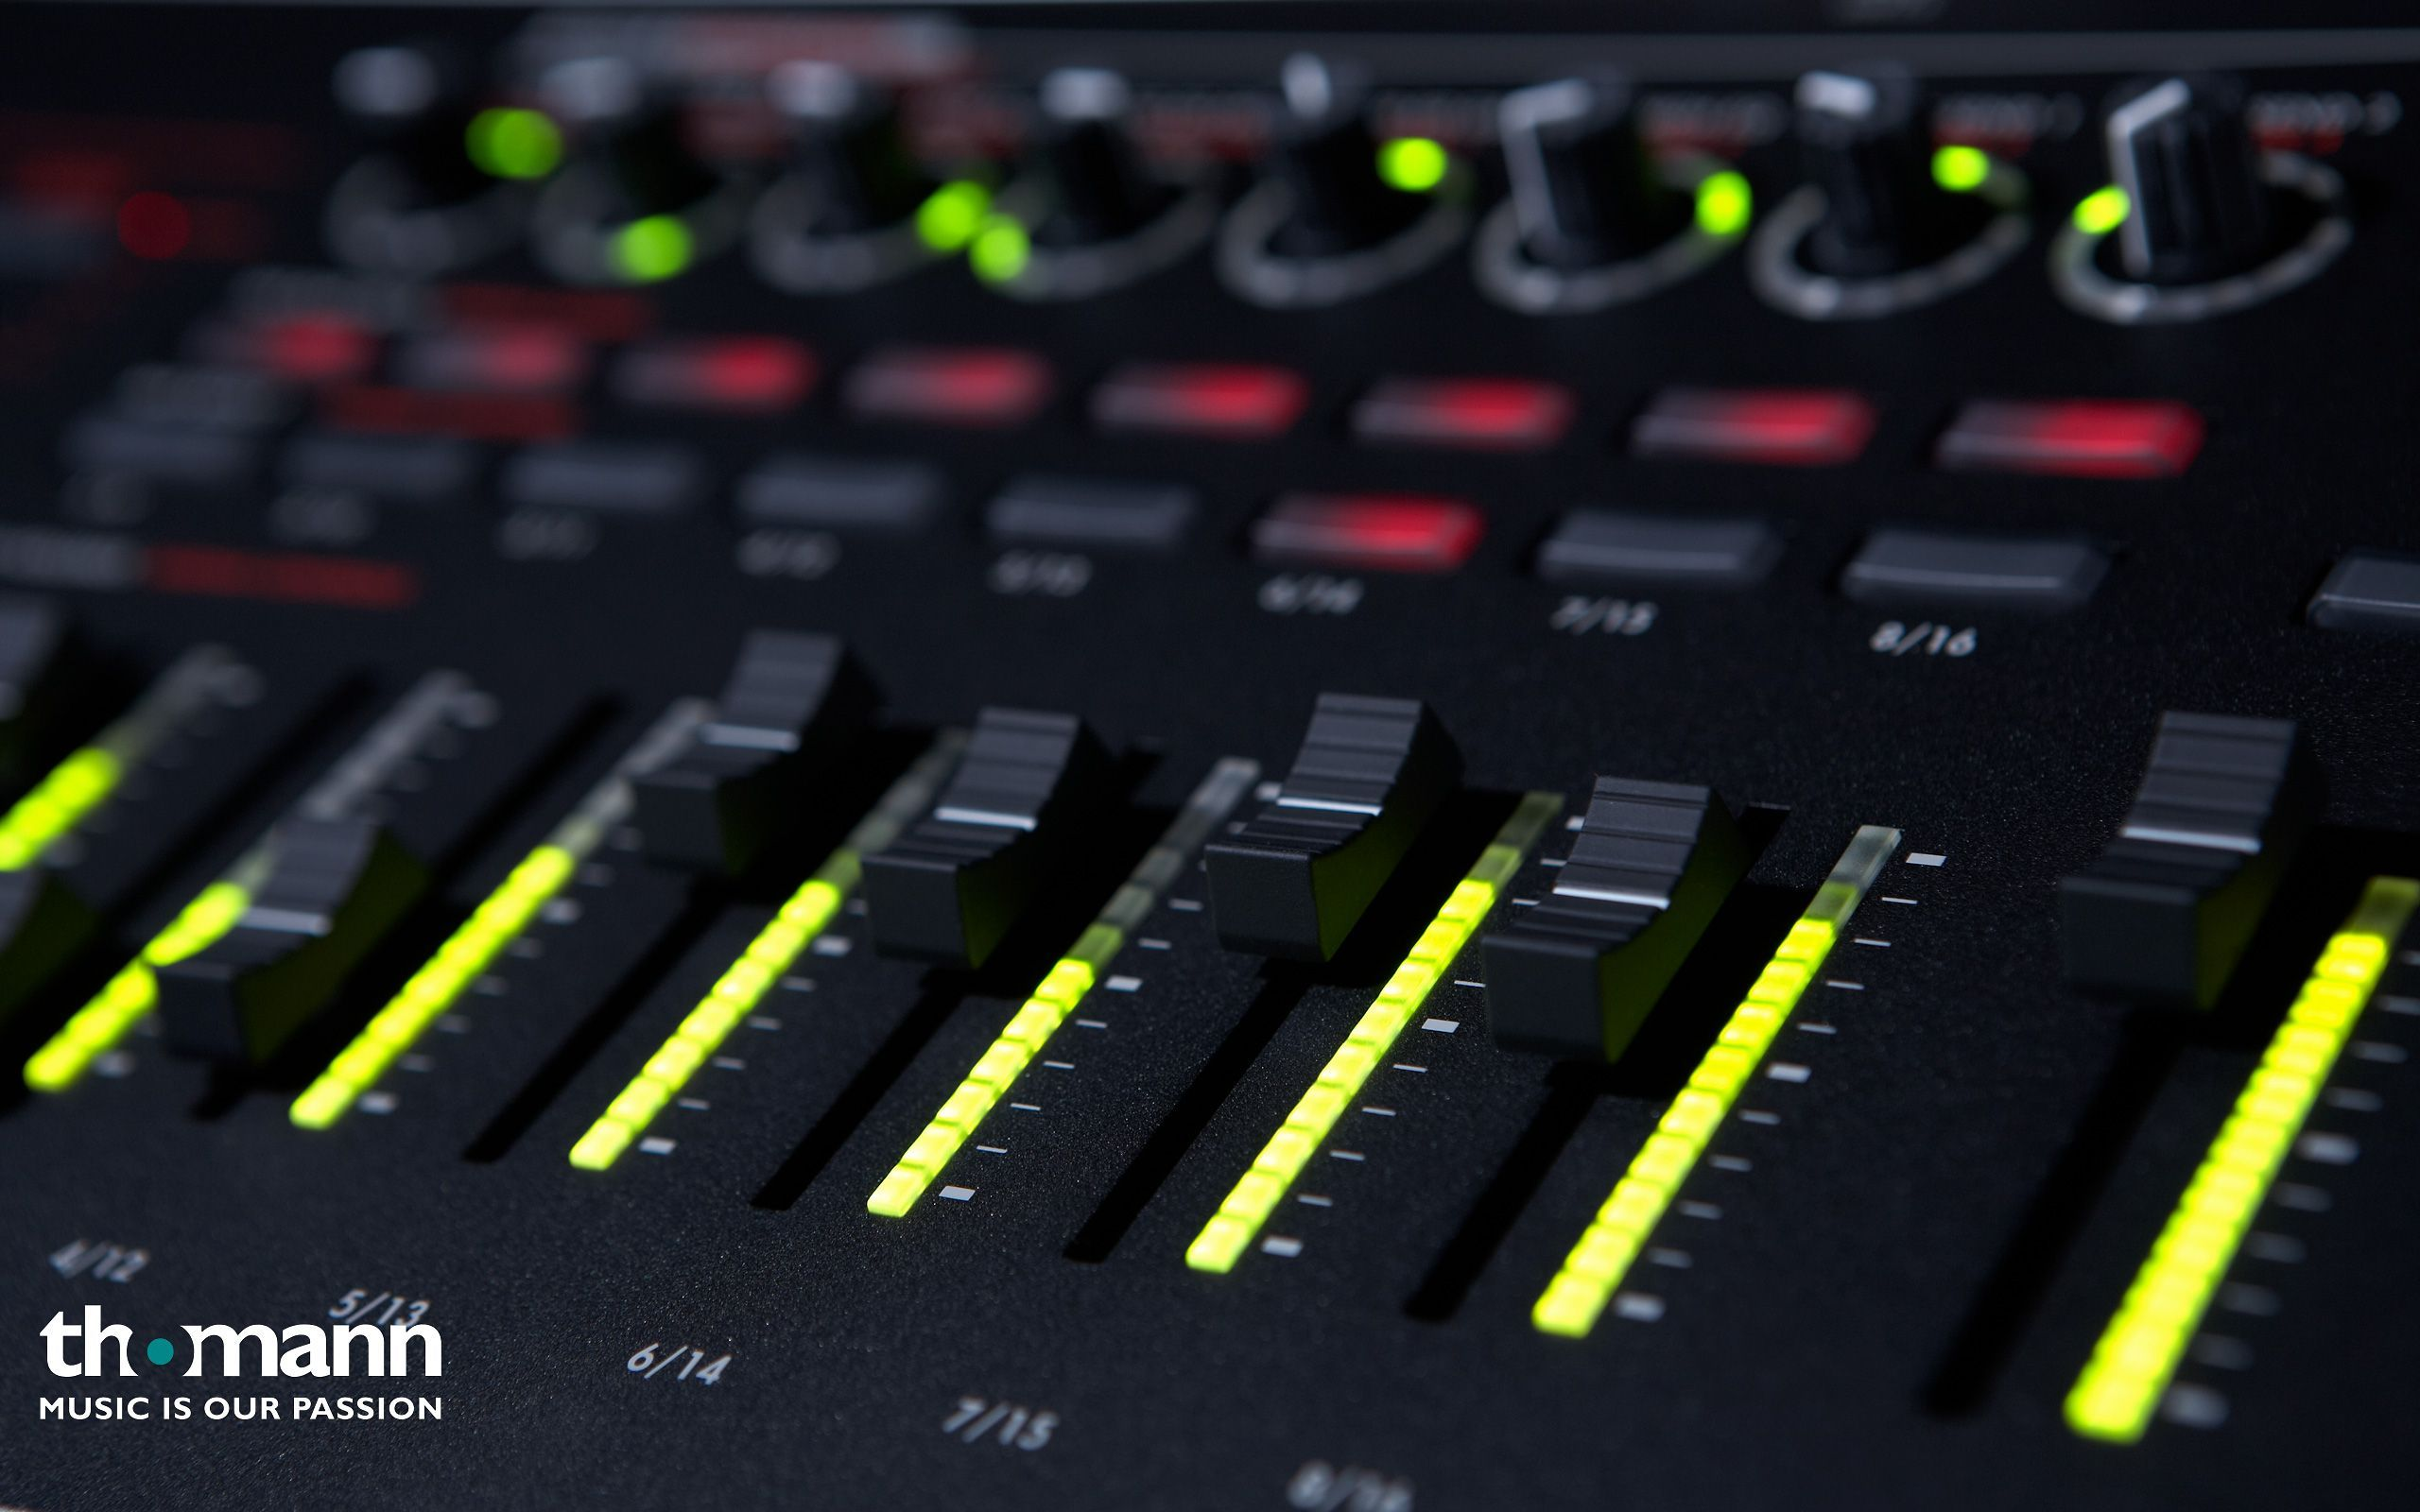 Free Download Fl Studio Wallpapers 2560x1600 For Your